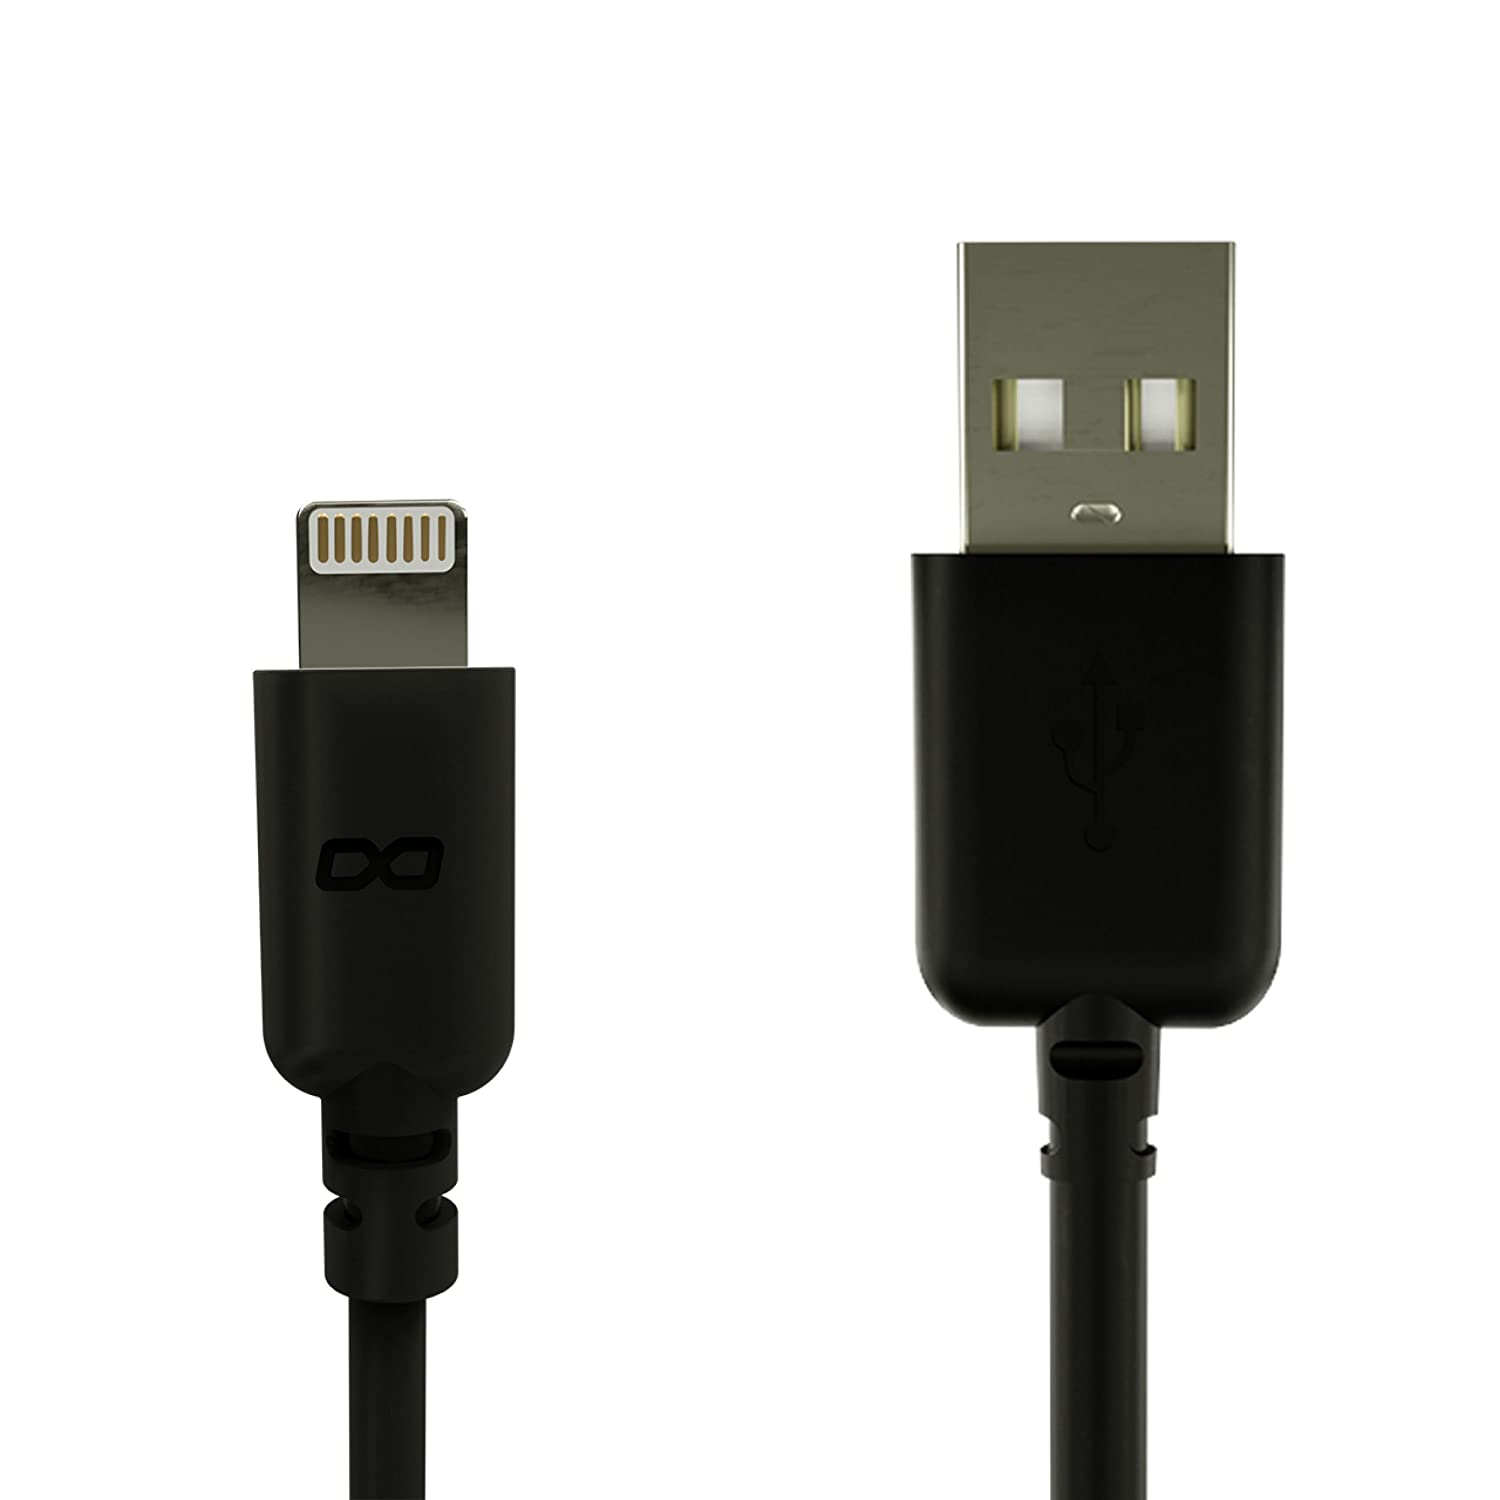 0.5 Meters 20 Inches KwikBoost Apple MFi Certified Lightning to USB Charge /& Sync Cable for iPhone 7//6s//6//5s//5c//5//Plus//iPad Mini//Air//Pro - Black